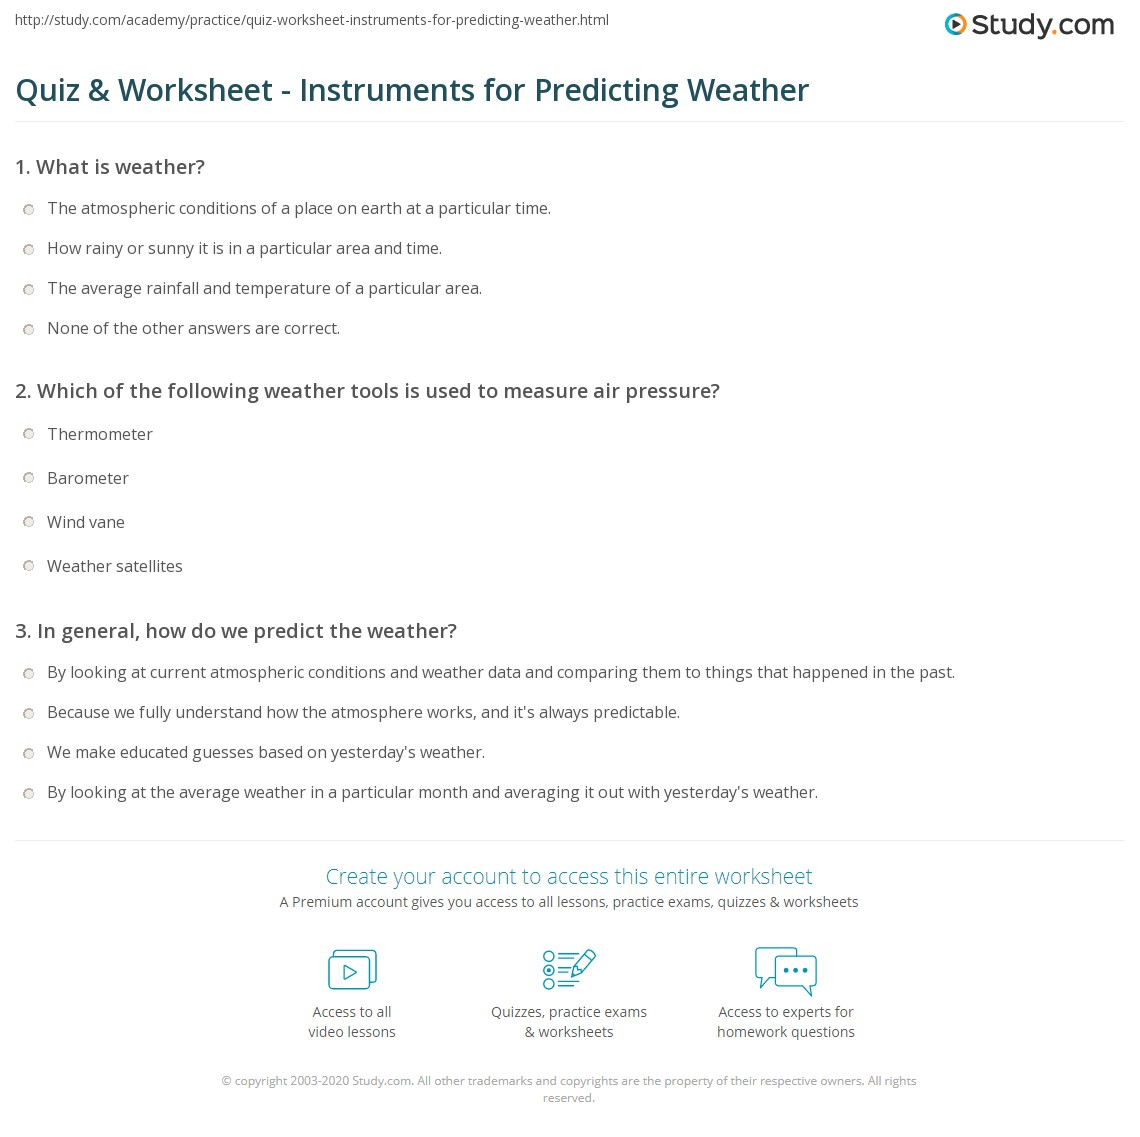 Forecasting Weather Map Worksheet 1 Answers   Lobo Black furthermore  besides weather map worksheet – coolmathsgames info as well Forecasting The Weather Worksheet   Oaklandeffect additionally Forecasting Weather Map Worksheet 1 Answers   Briefencounters additionally Quiz   Worksheet   Instruments for Predicting Weather   Study moreover  moreover Reading A Weather Map Worksheet   Download Them And Try To Solve In moreover weather map worksheet – coolmathsgames info moreover Create A Weather Map Worksheet together with Forecasting Weather Map Worksheet 1 Deployday  Weather Map Symbols likewise forecasting weather map worksheet  1 answers Archives   FREE besides briefencounters ca wp content uploads 2018 11 fore also 29  Weather Map Worksheet  2 besides  as well forecasting weather map worksheet 1 – Help You witt Maps. on forecasting weather map worksheet 1